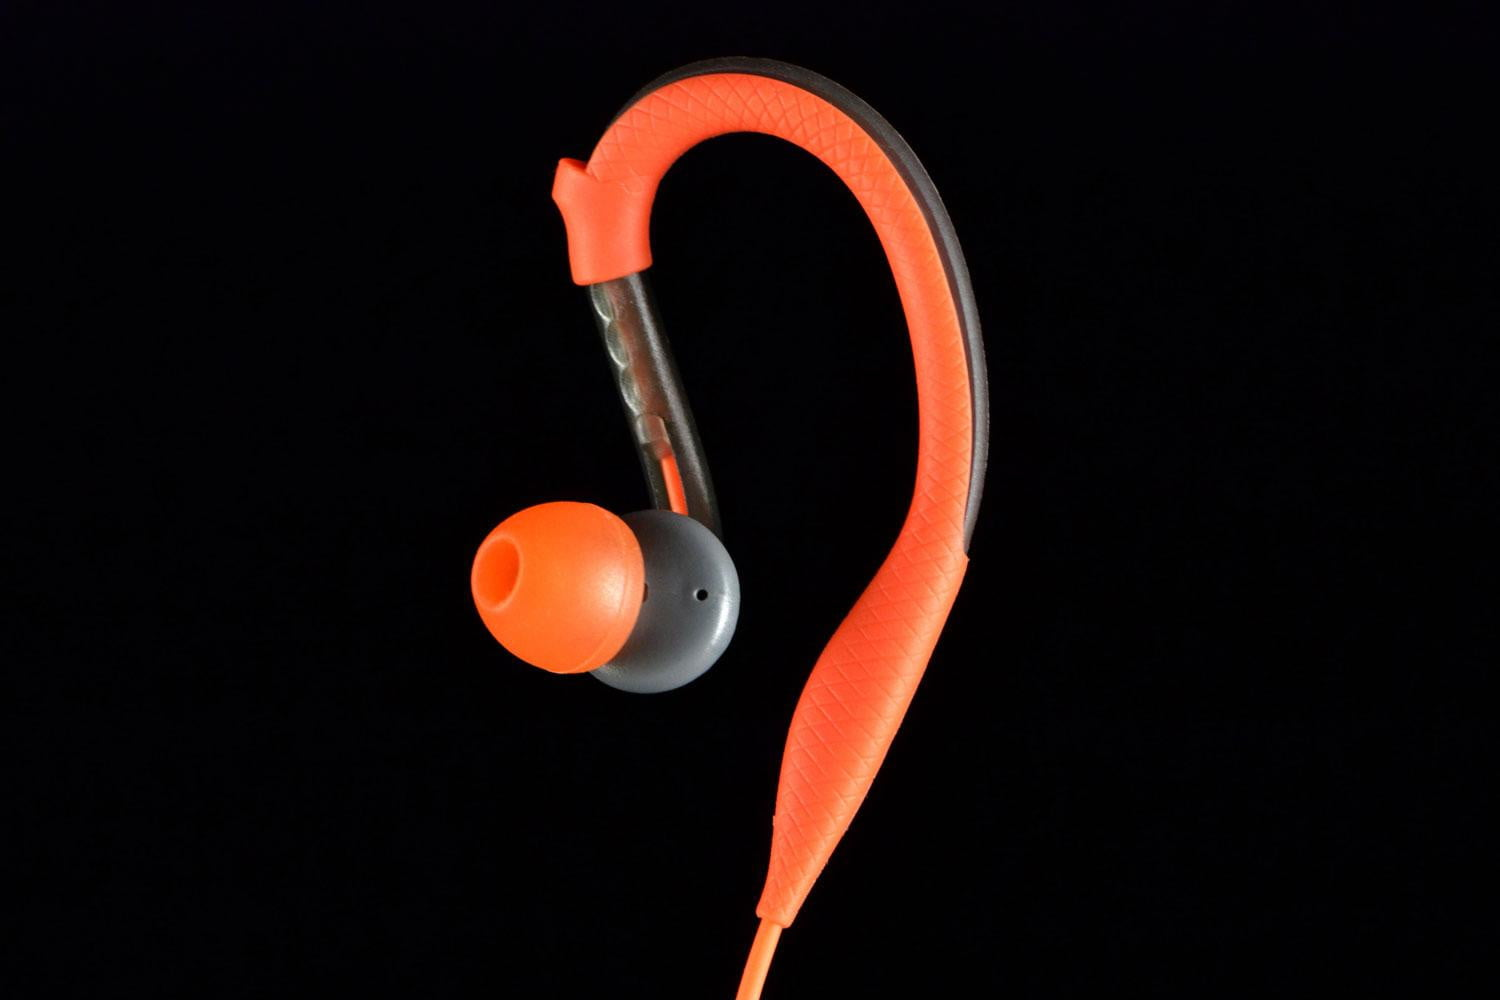 Earbuds grip - earbuds small ears